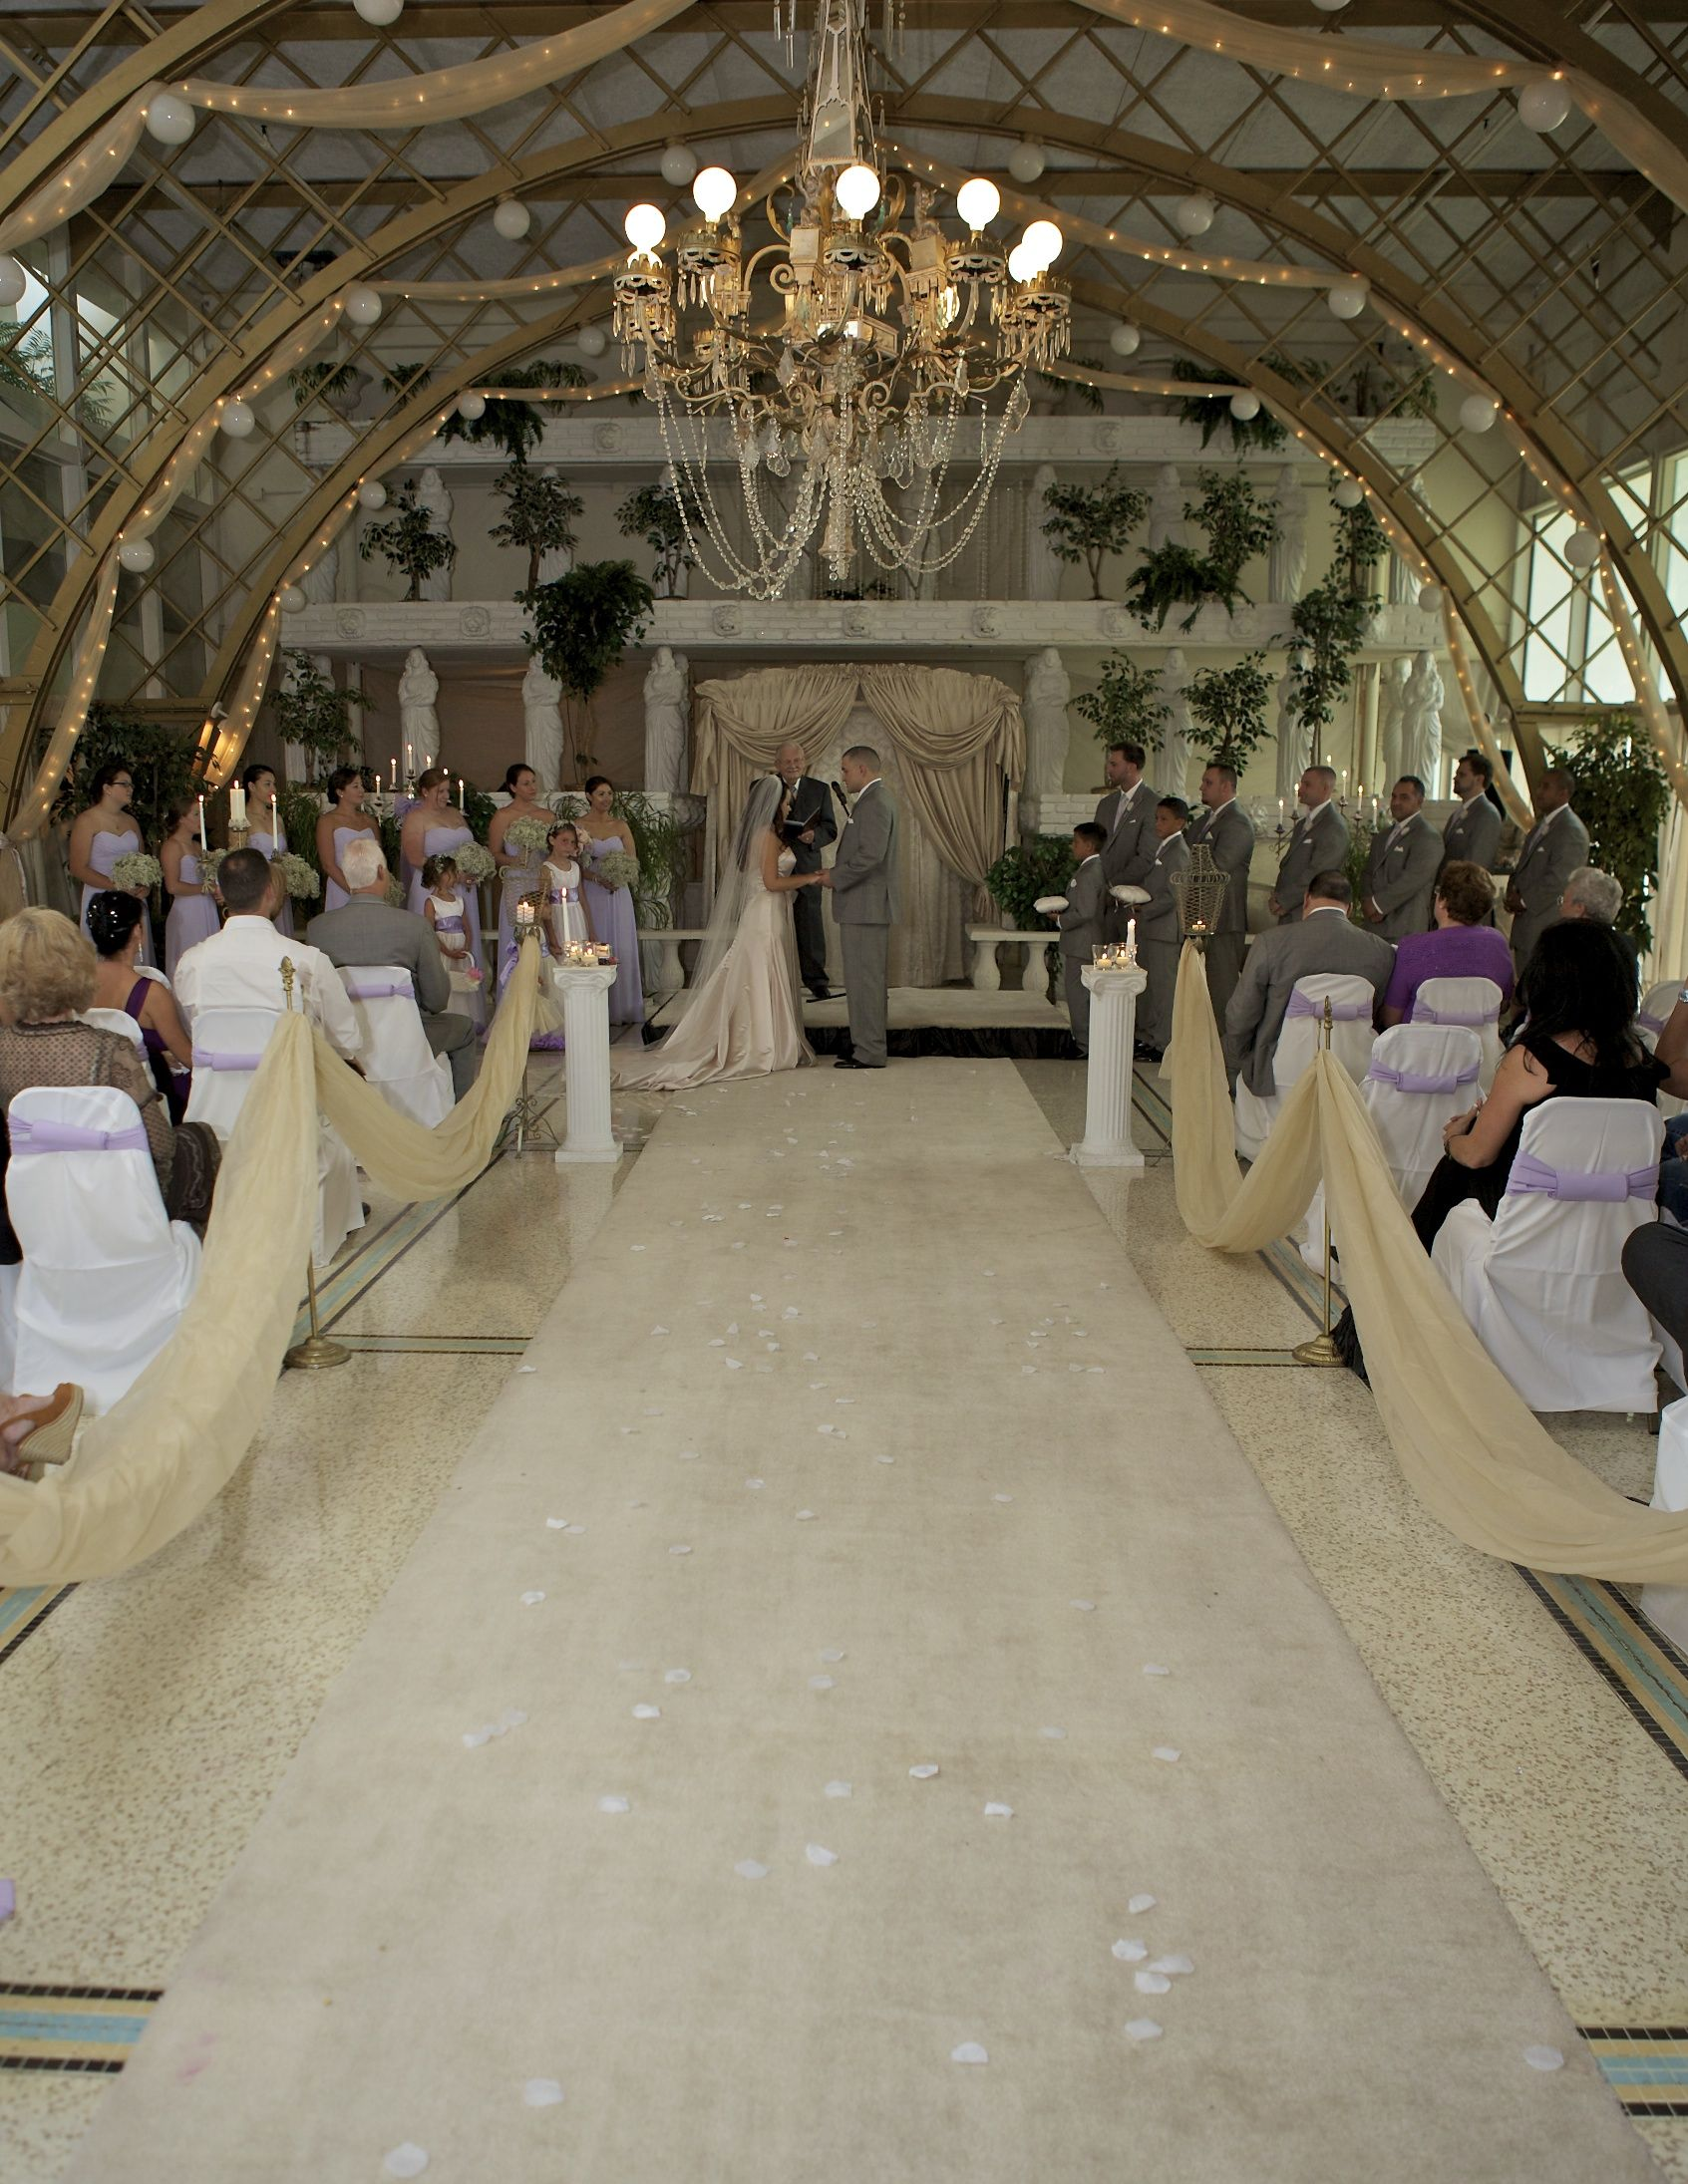 The Florida Room Of Kapok Special Events Center In Clearwater With A Garden Wedding VenuesWedding